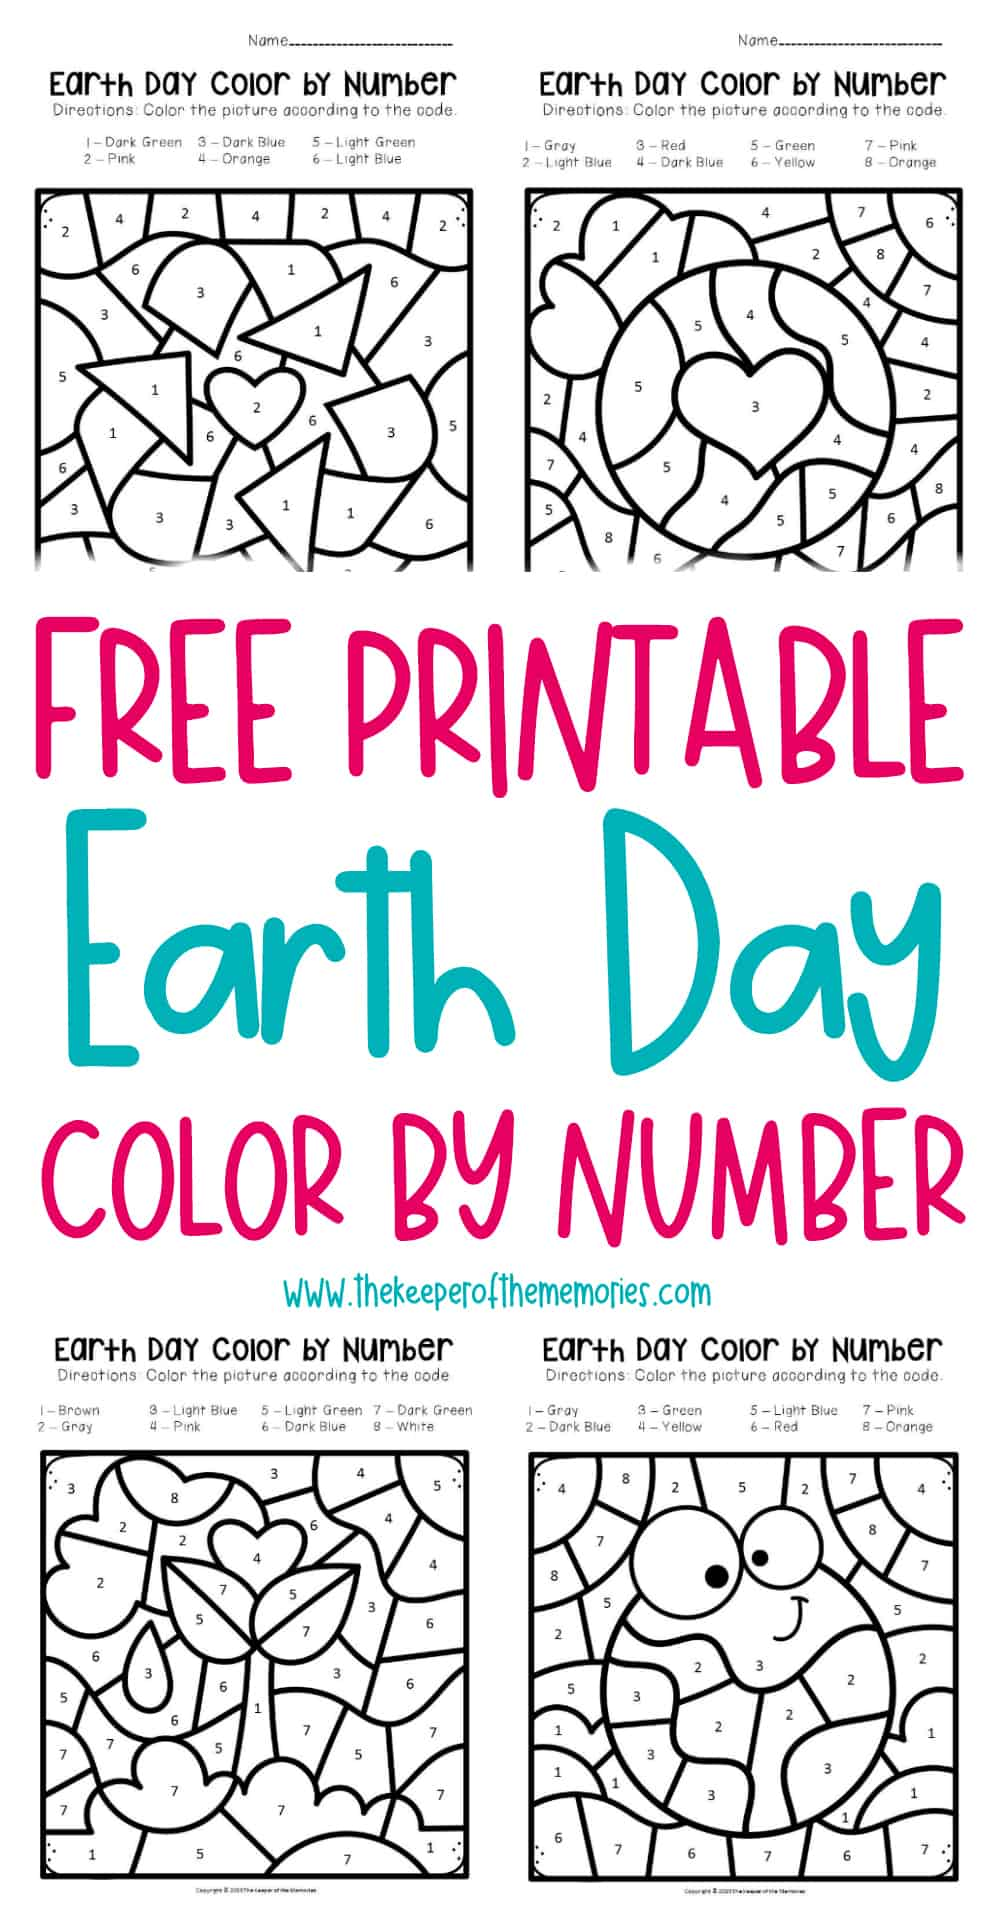 Free Printable Color by Number Earth Day Preschool ...